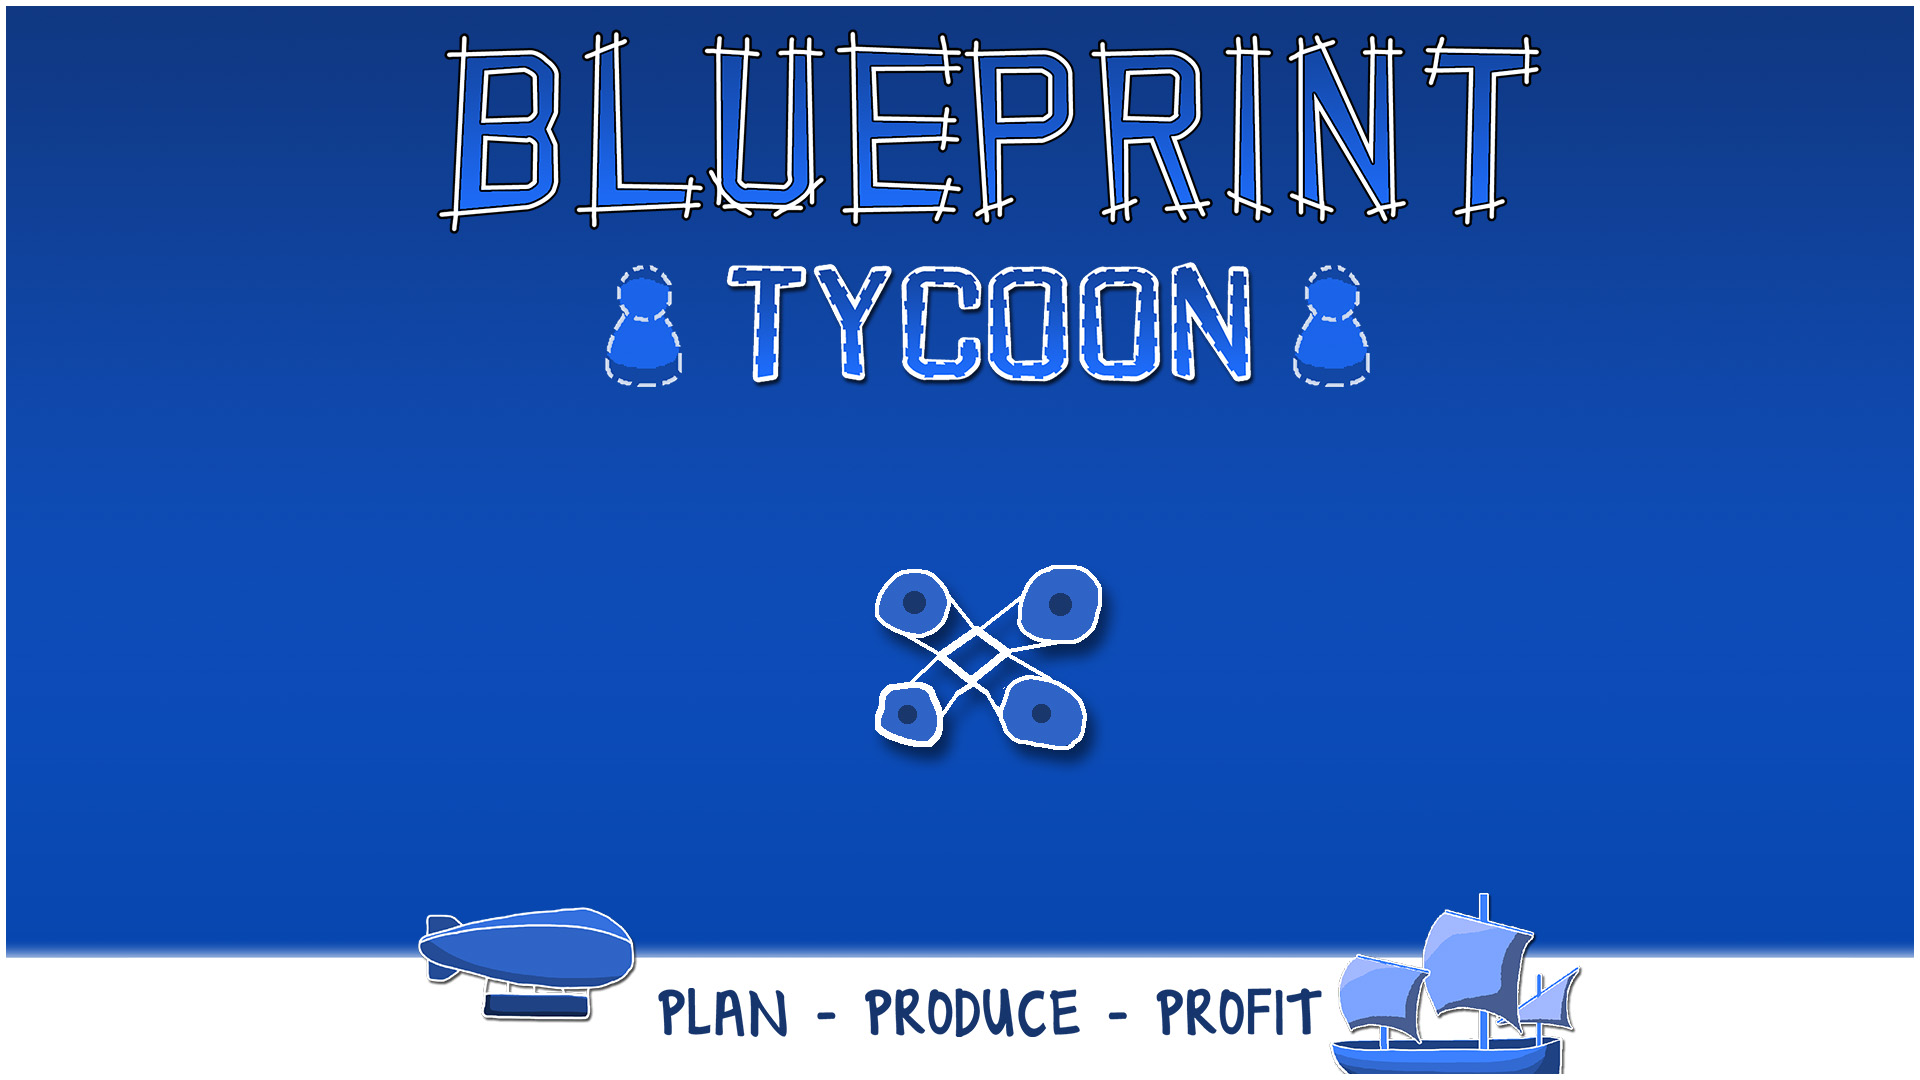 Steam card exchange showcase blueprint tycoon card 4 of 15artwork drone malvernweather Images